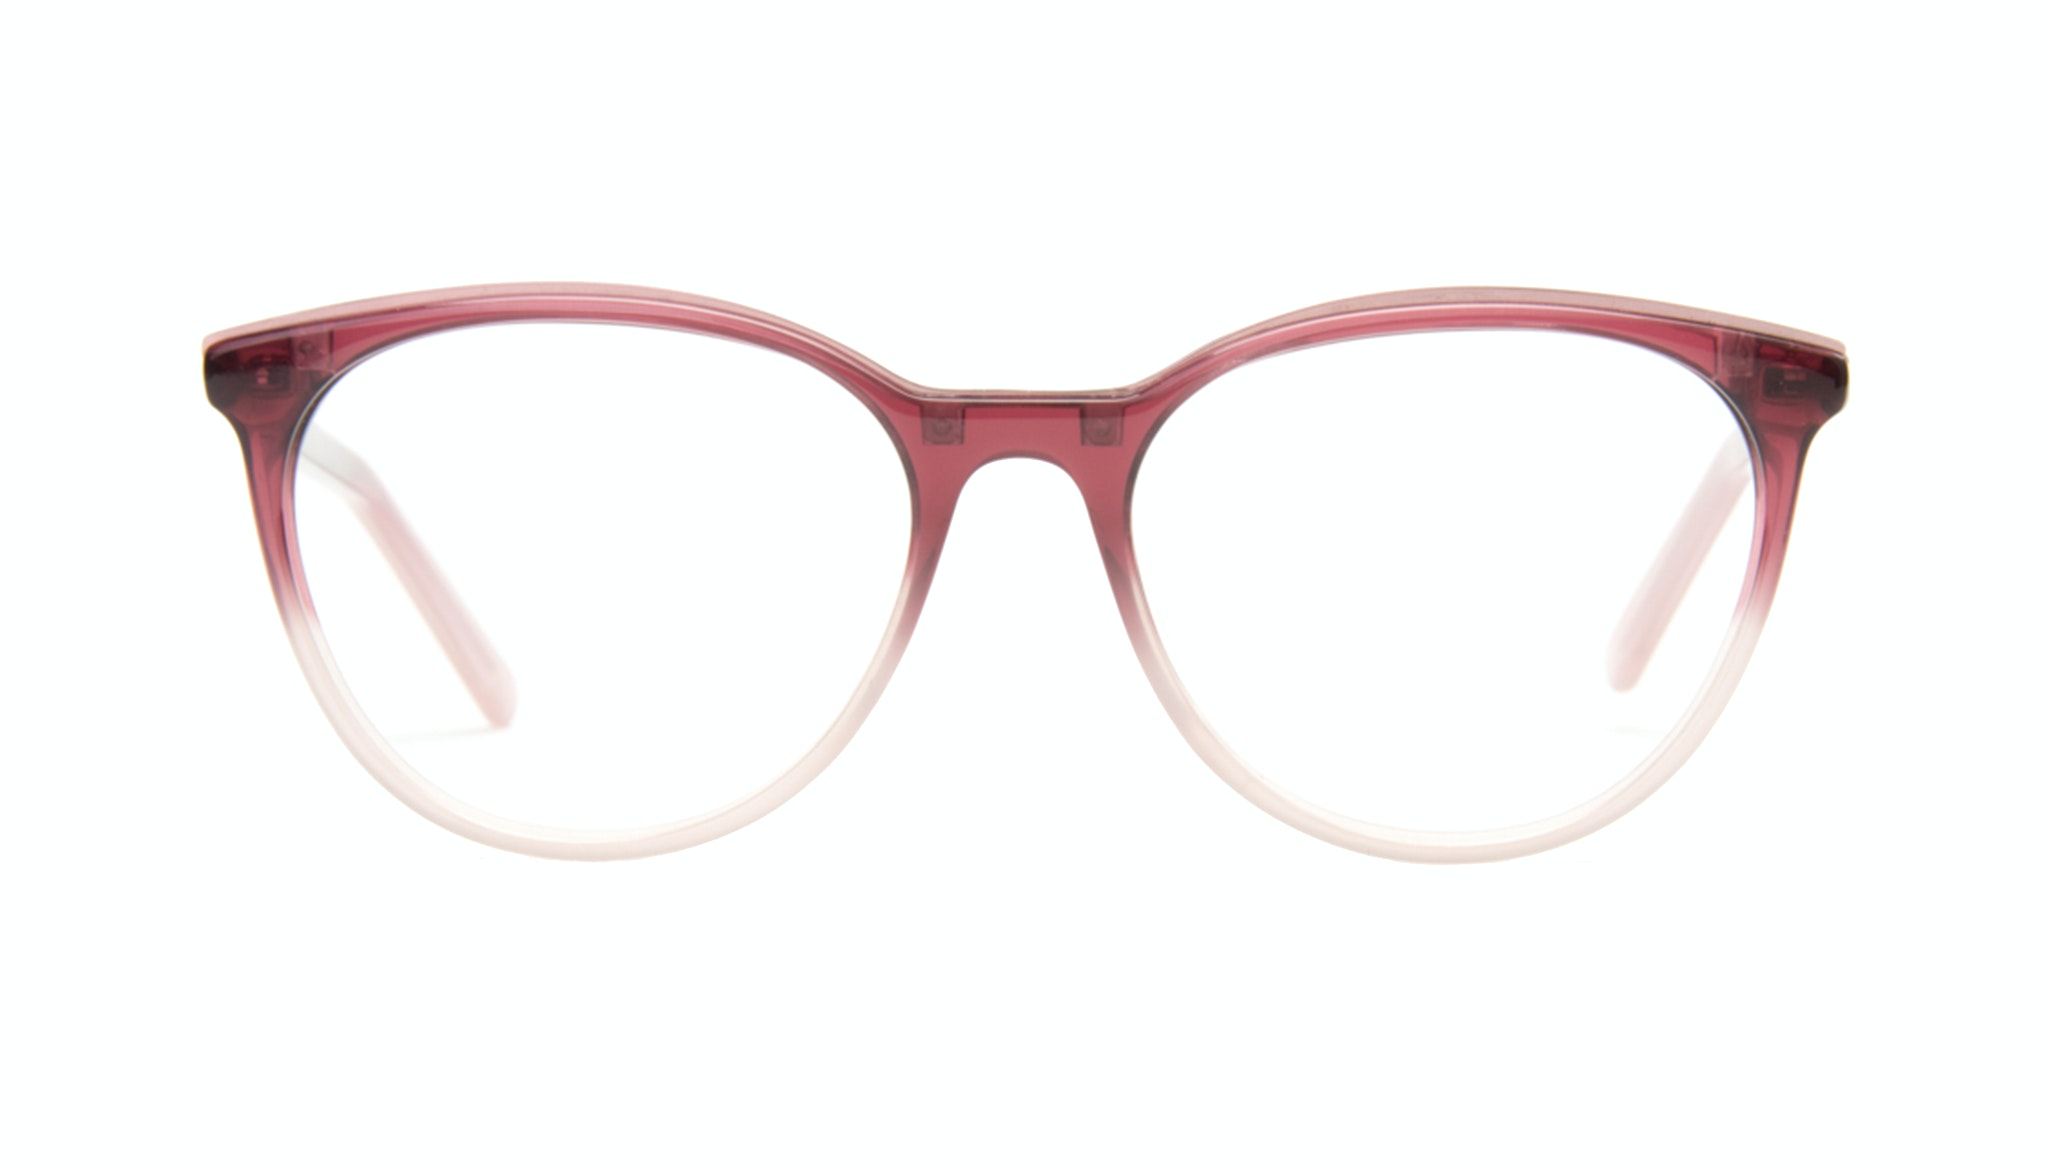 Affordable Fashion Glasses Round Eyeglasses Women Gypsy Berry